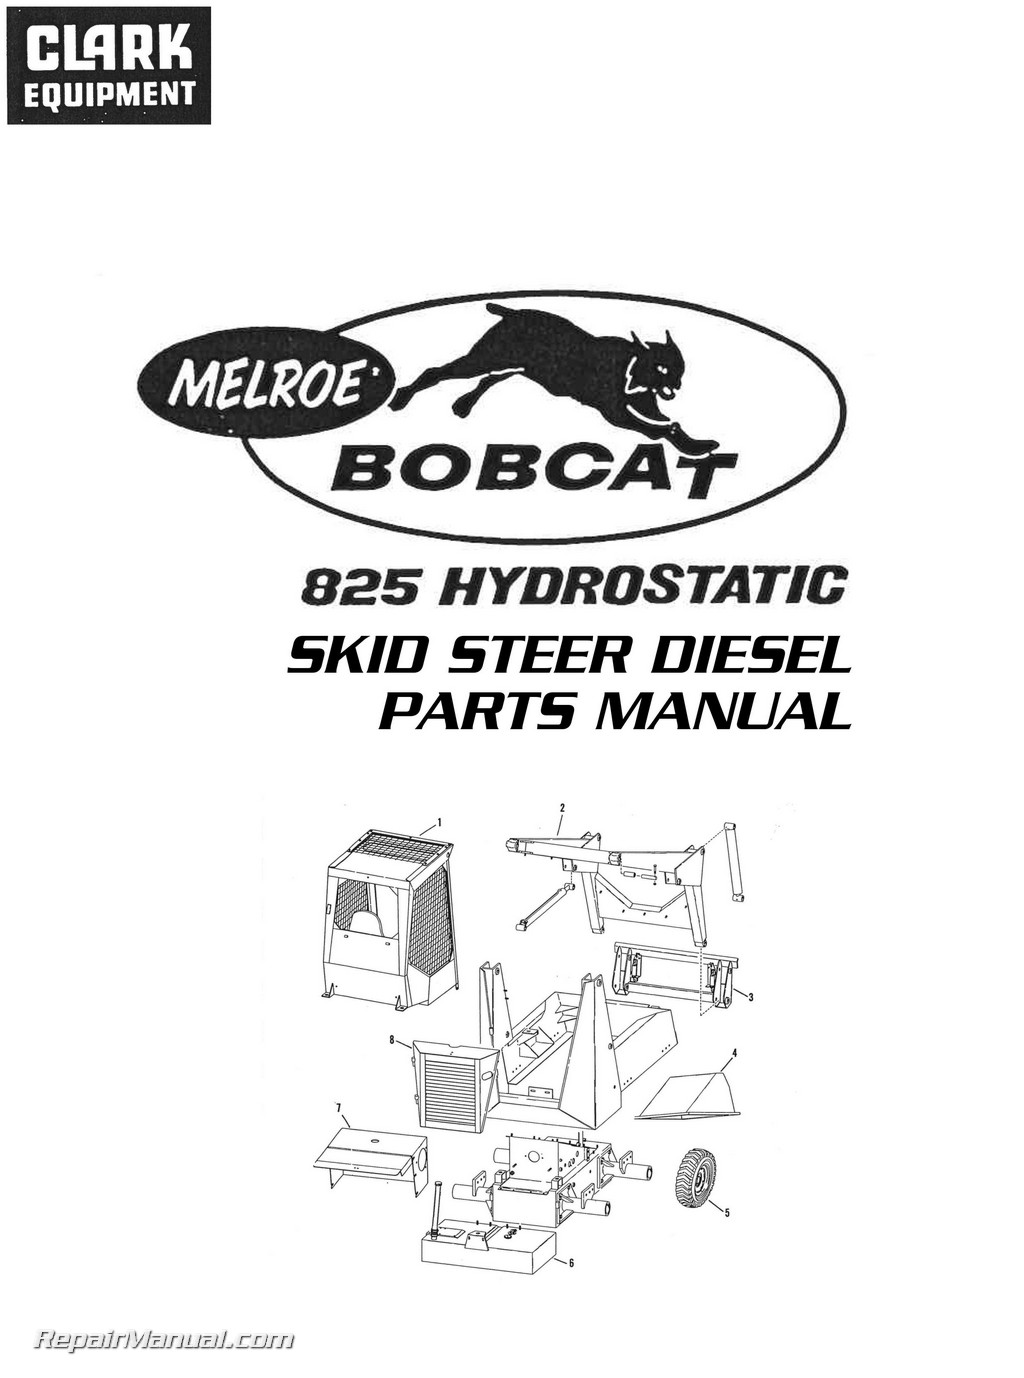 Clark Bobcat 825 Hydrostatic Skid Steer Diesel Parts Manual 610 Wiring Diagram